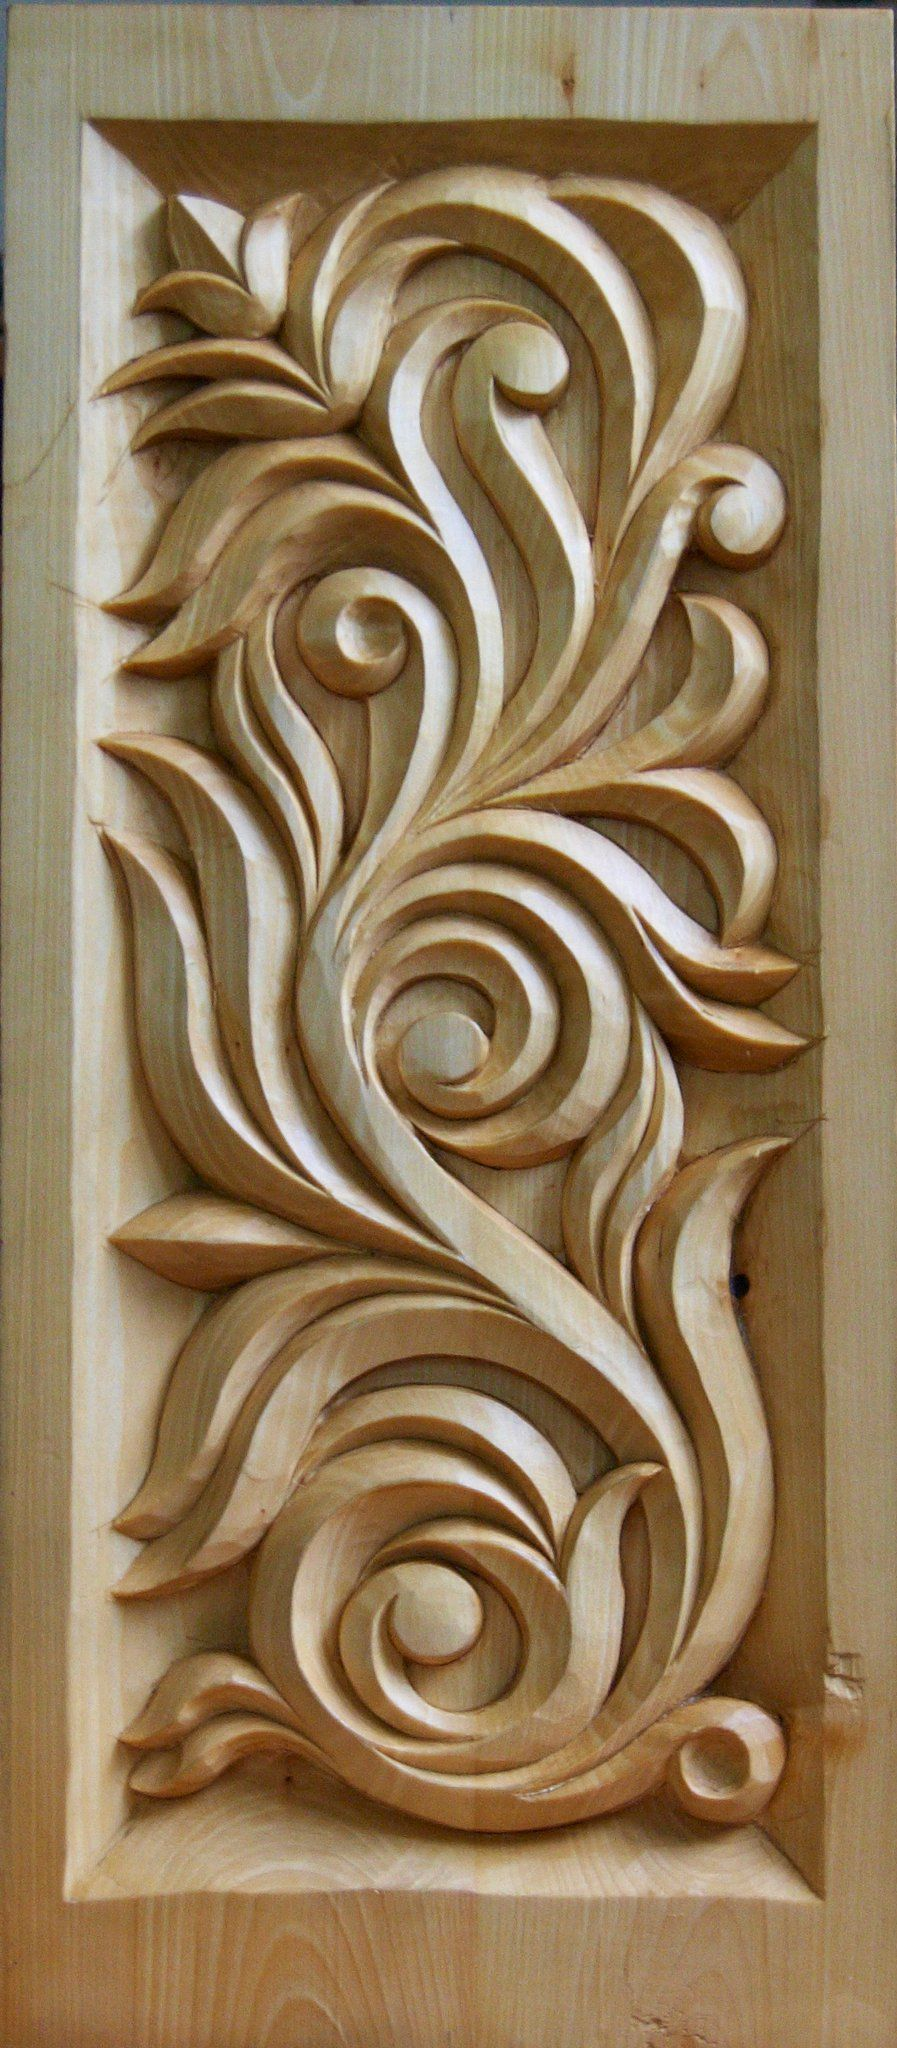 Wooden carved panel nicely done woodcarving